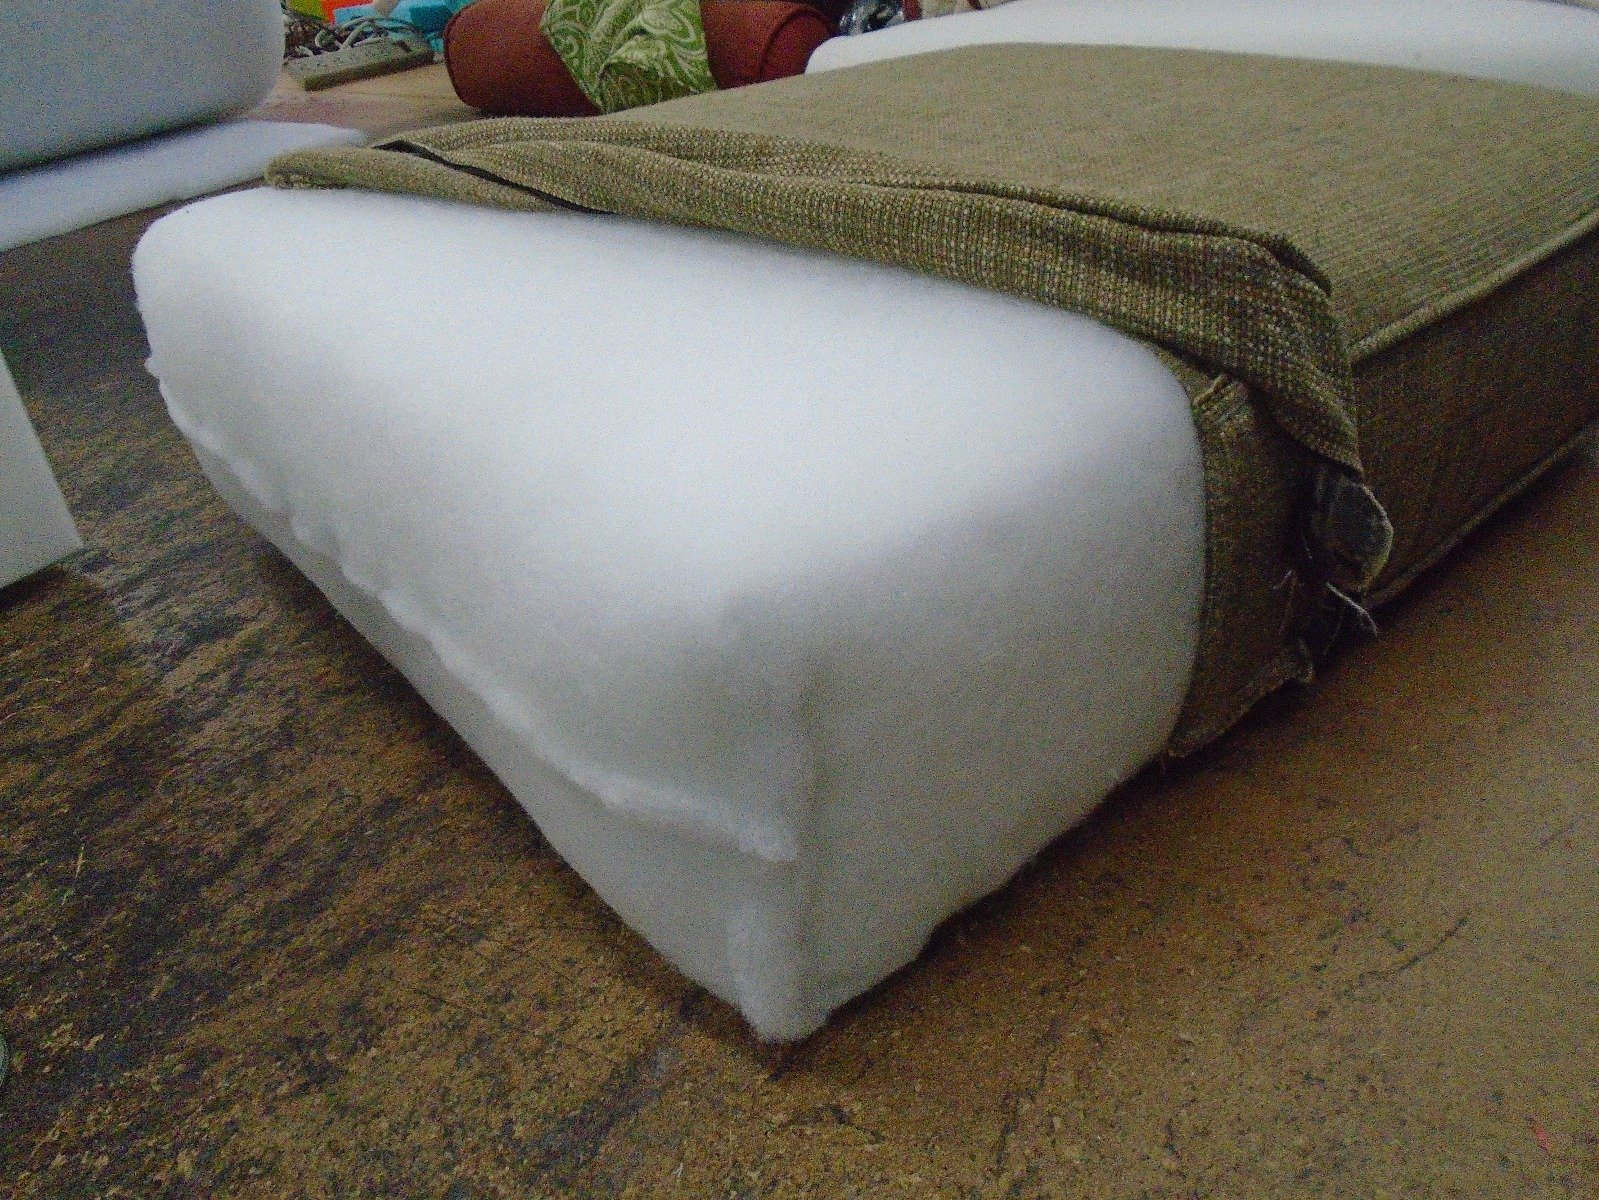 Foam Cushion with dacron Wrap